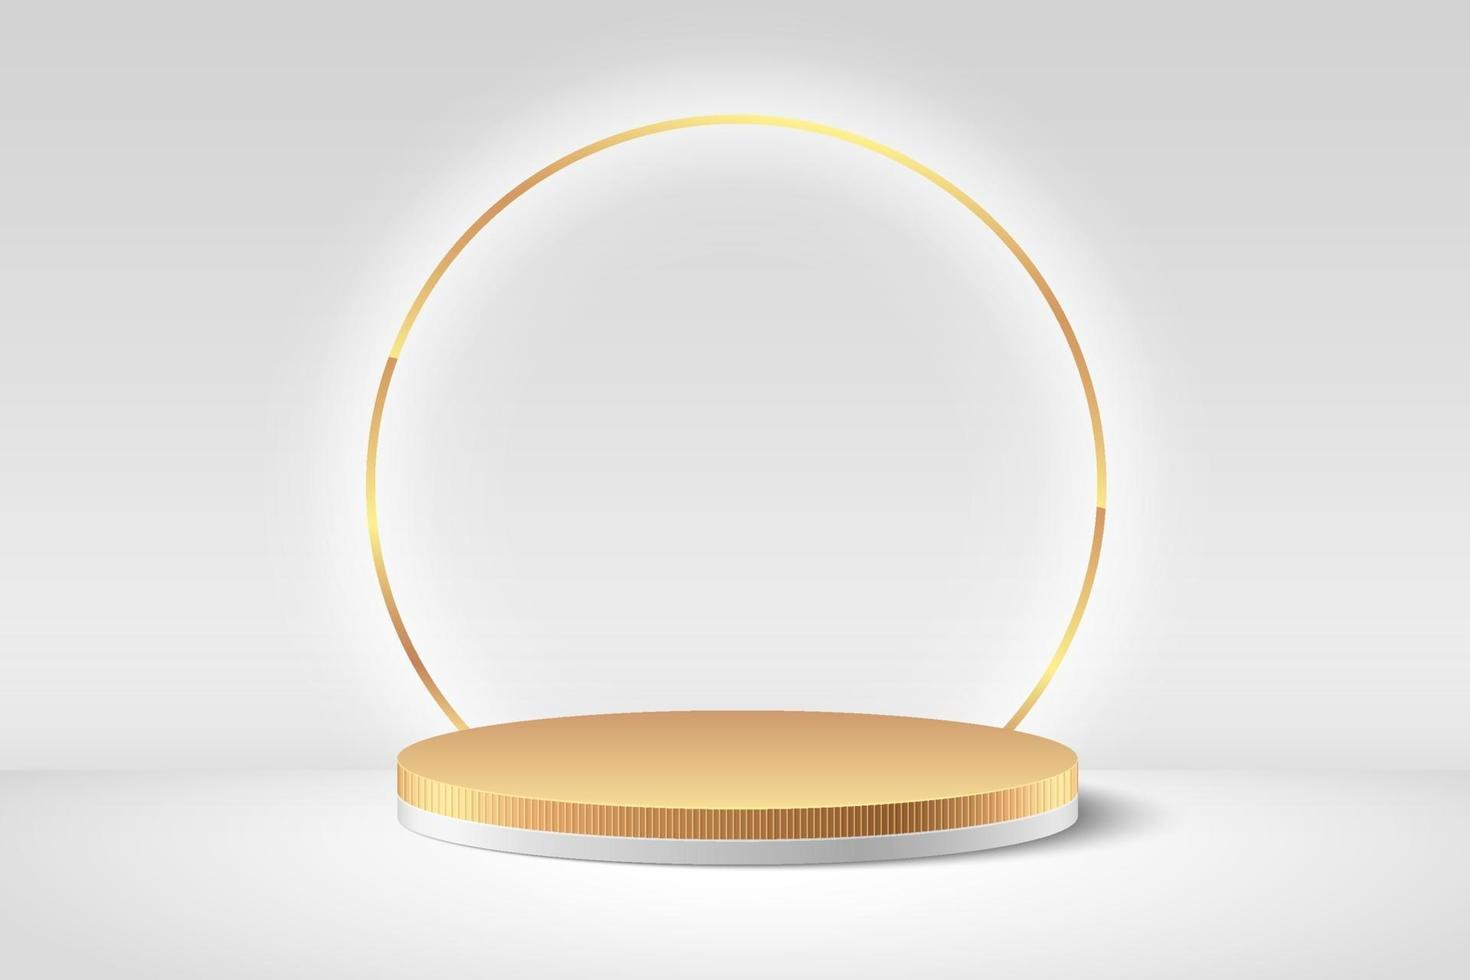 Abstract vector rendering 3d shape, Cosmetic product display presentation. Luxury white and gold cylinder pedestal podium, Shiny golden ring and empty room background. Minimall wall scene.